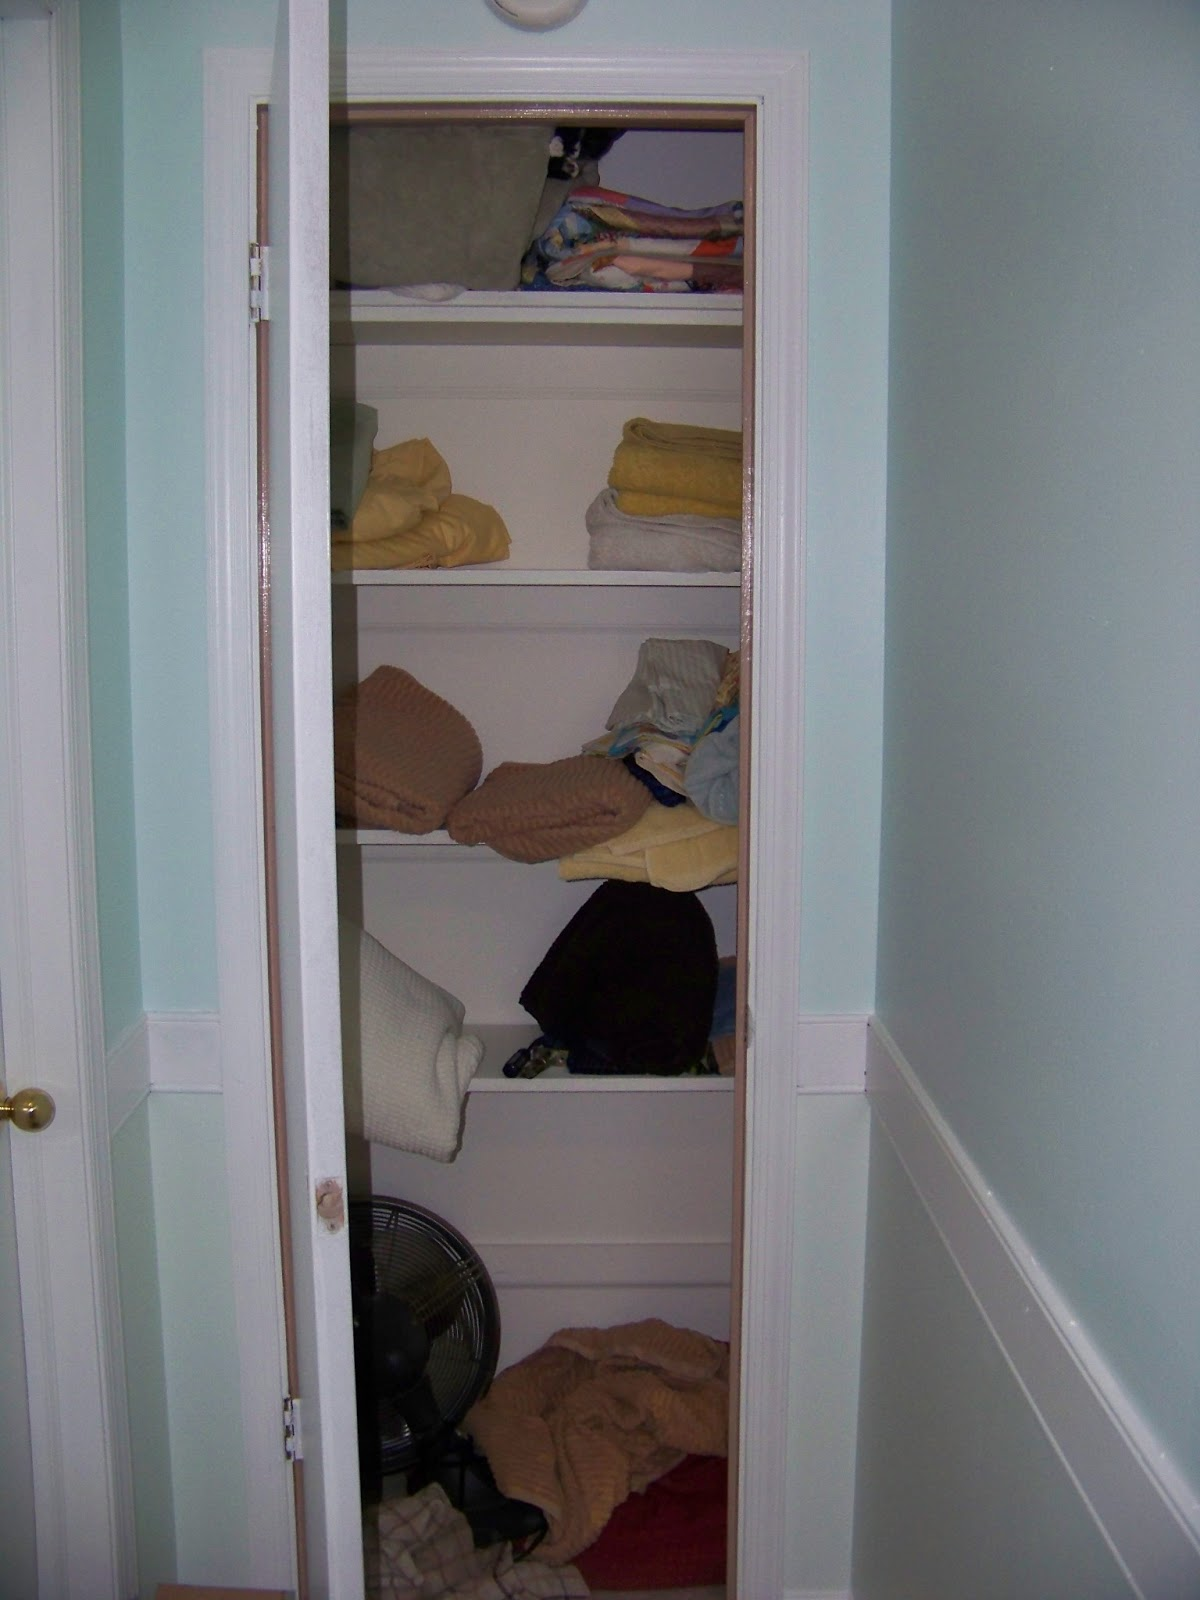 Well Thats A Mighty Messy Linen Closet Howd All Those Towels End Up So Disheveled And On The Floor